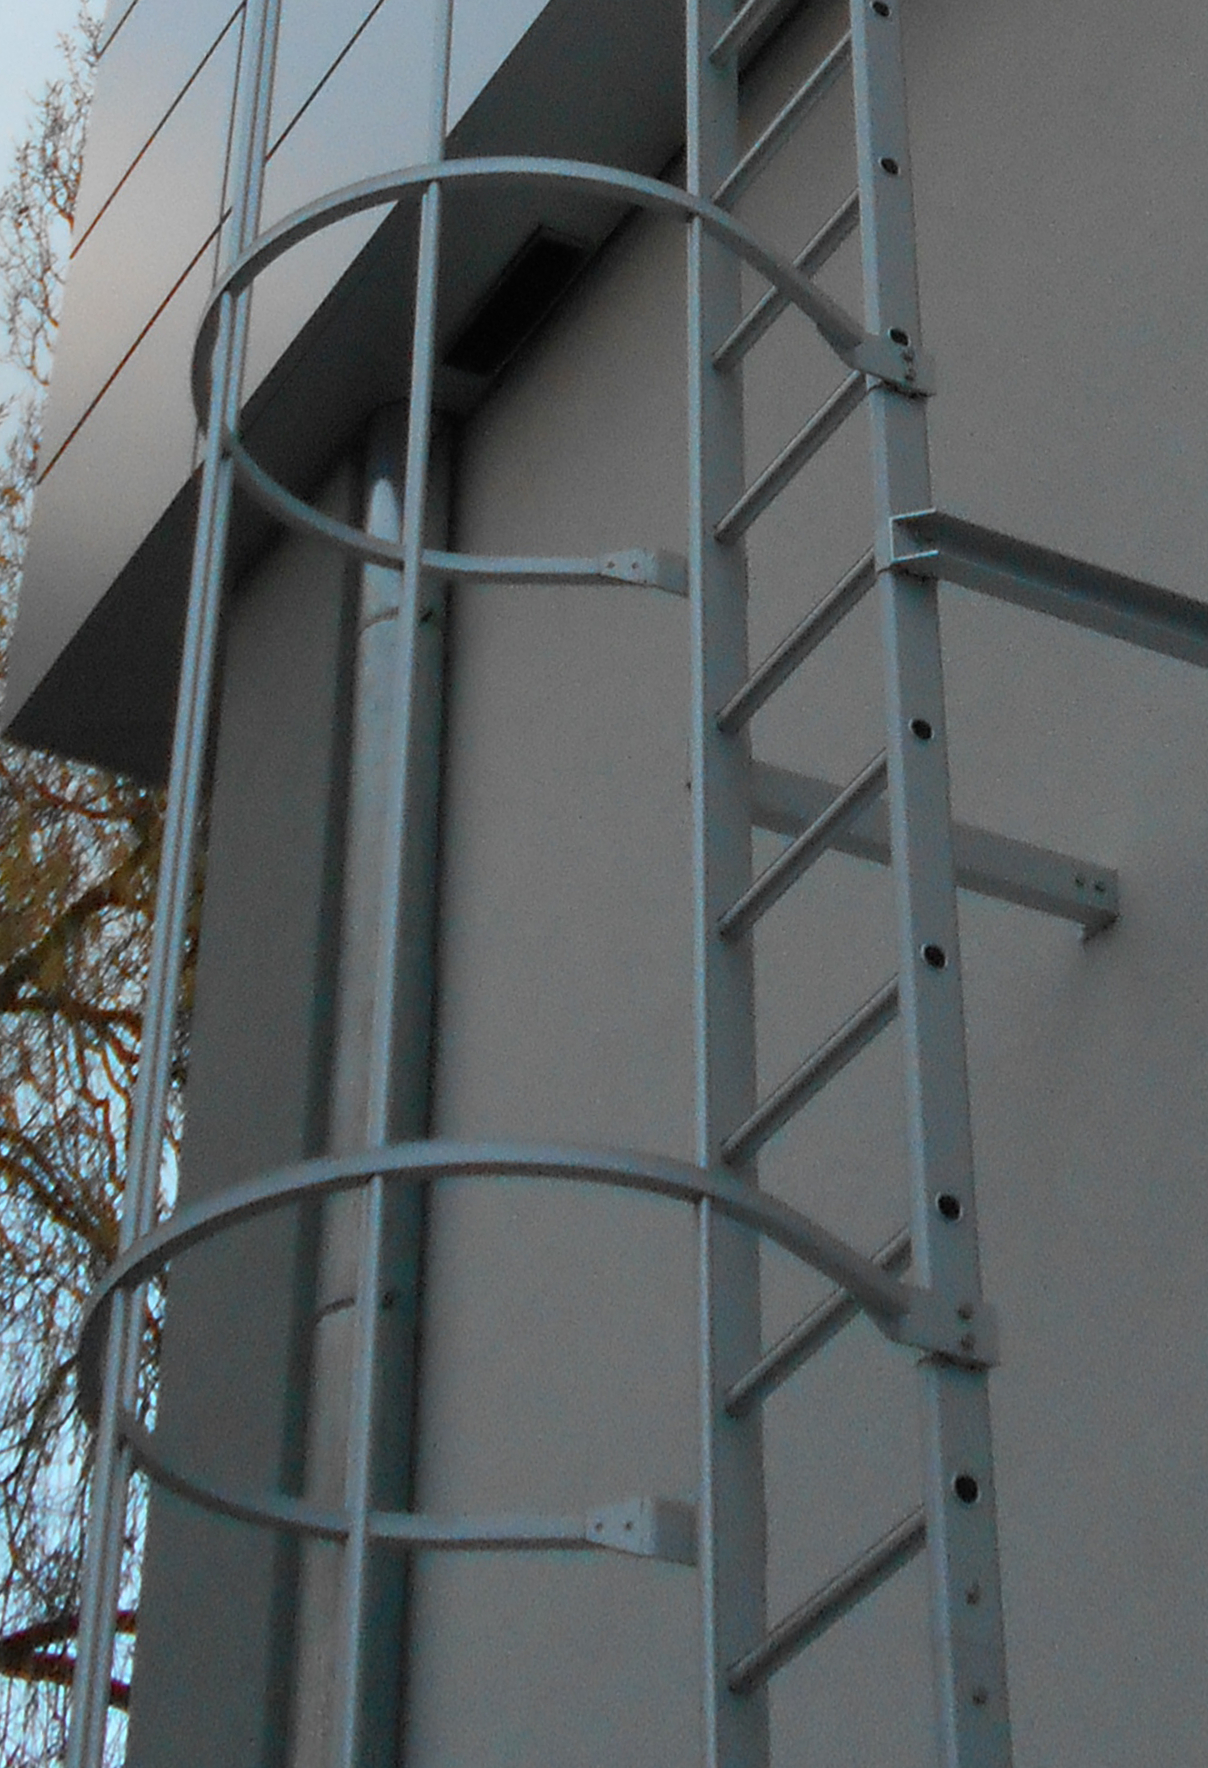 Additional fixed ladder section